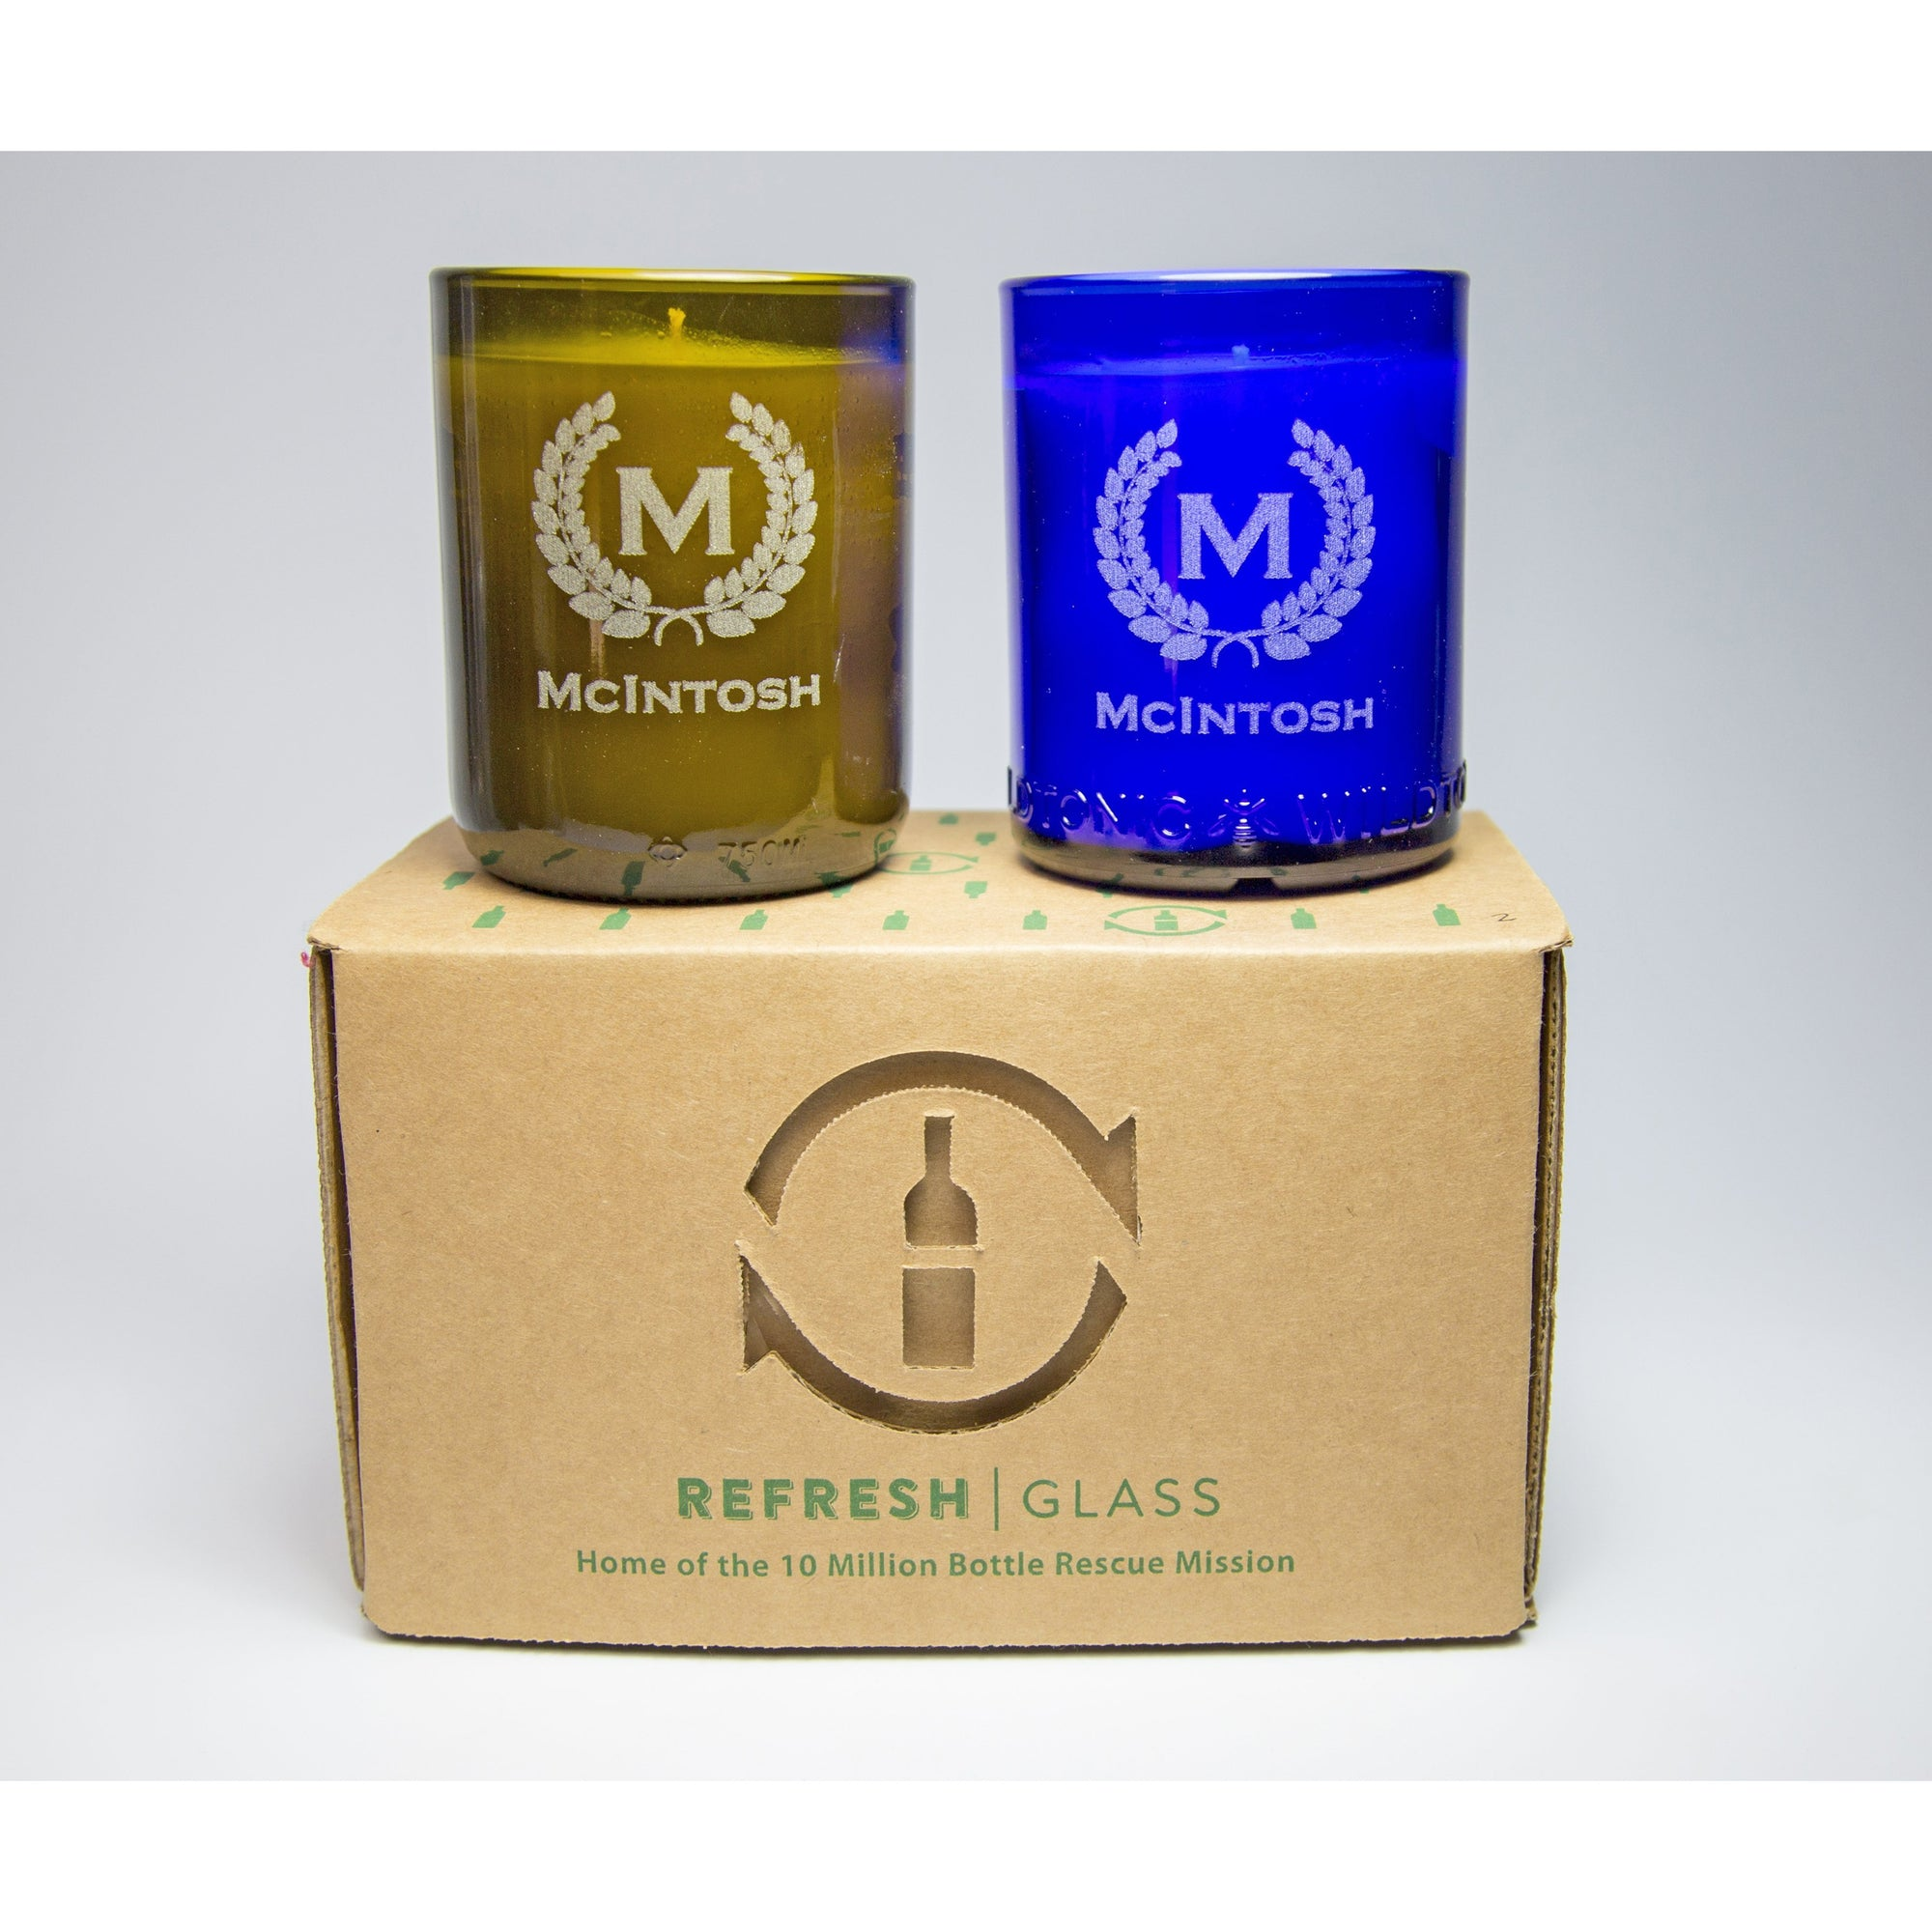 2-Pack Candle Set - Monogram & Crest-Refresh Glass